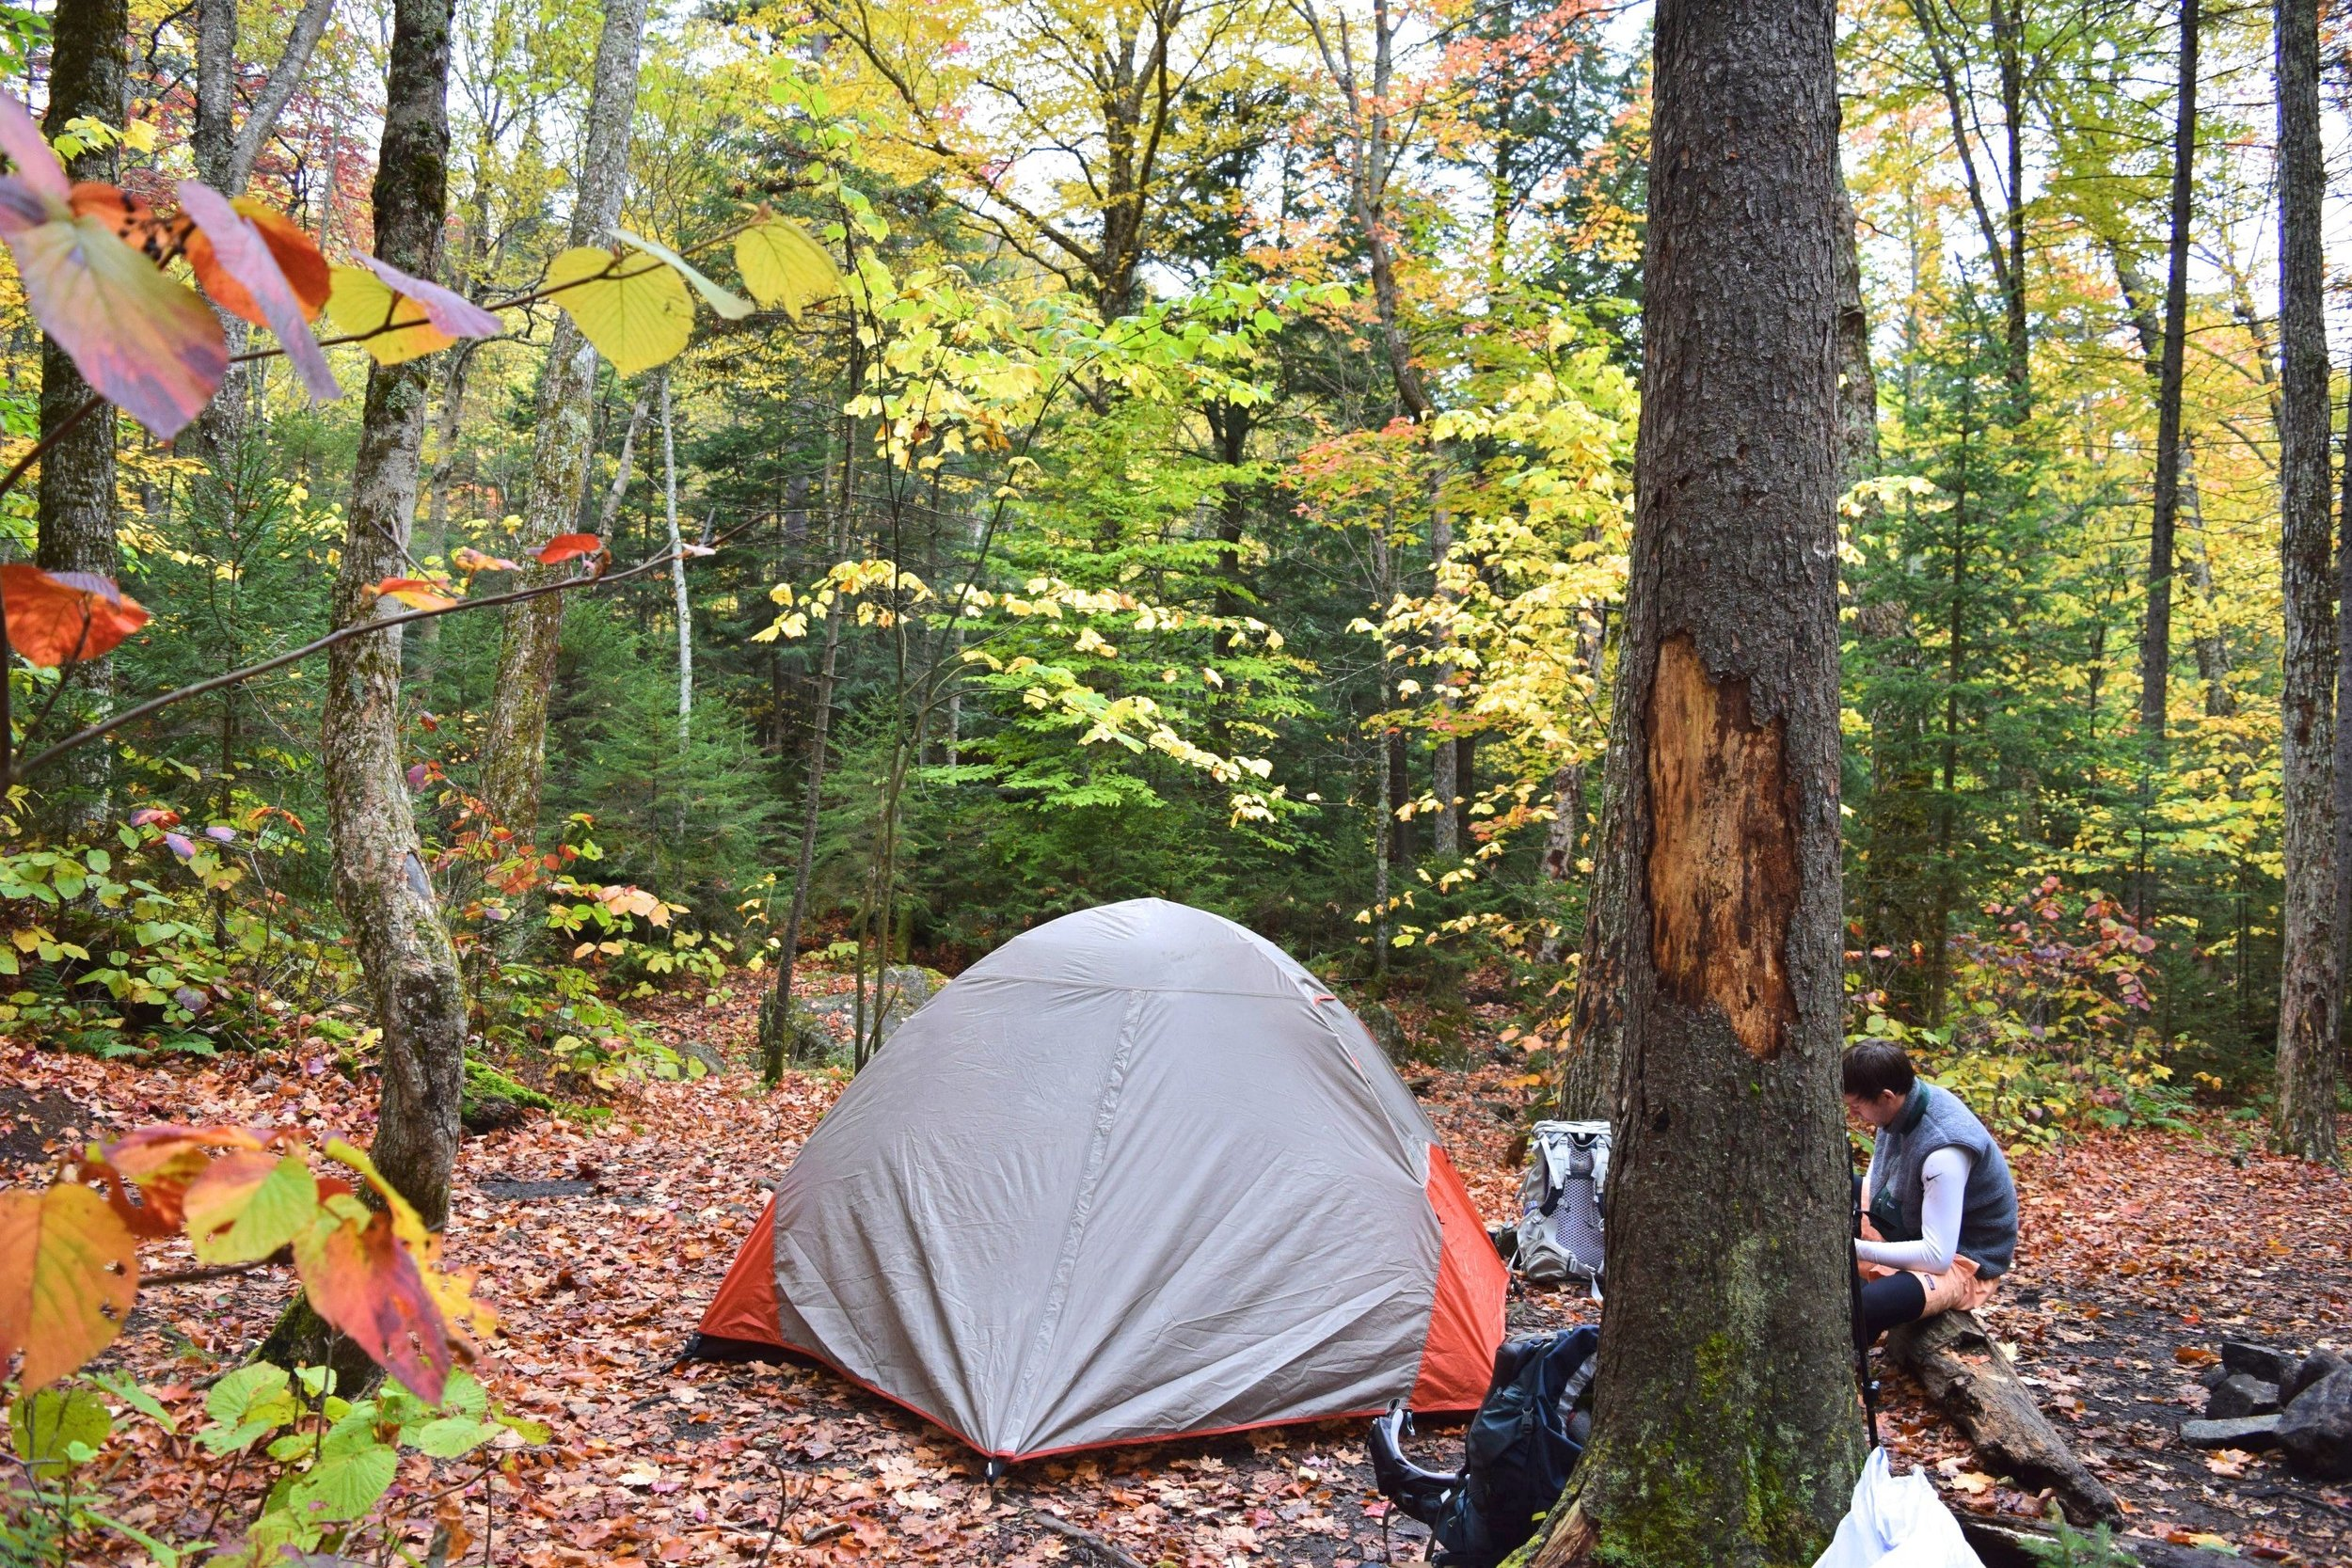 Our campsite right beside the creek.